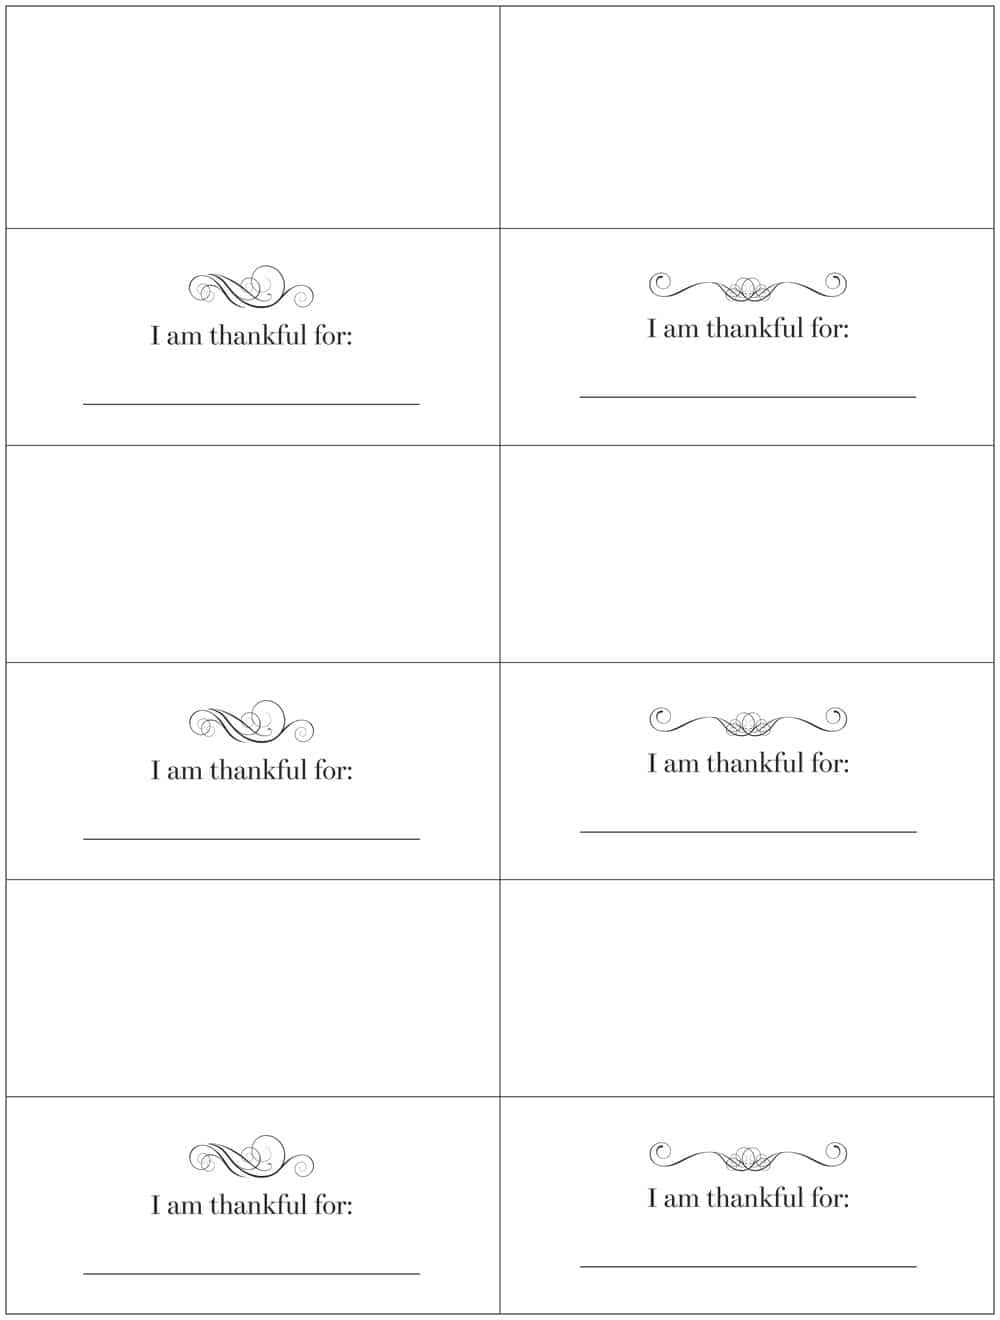 Free downloadable Thanksgiving placecards